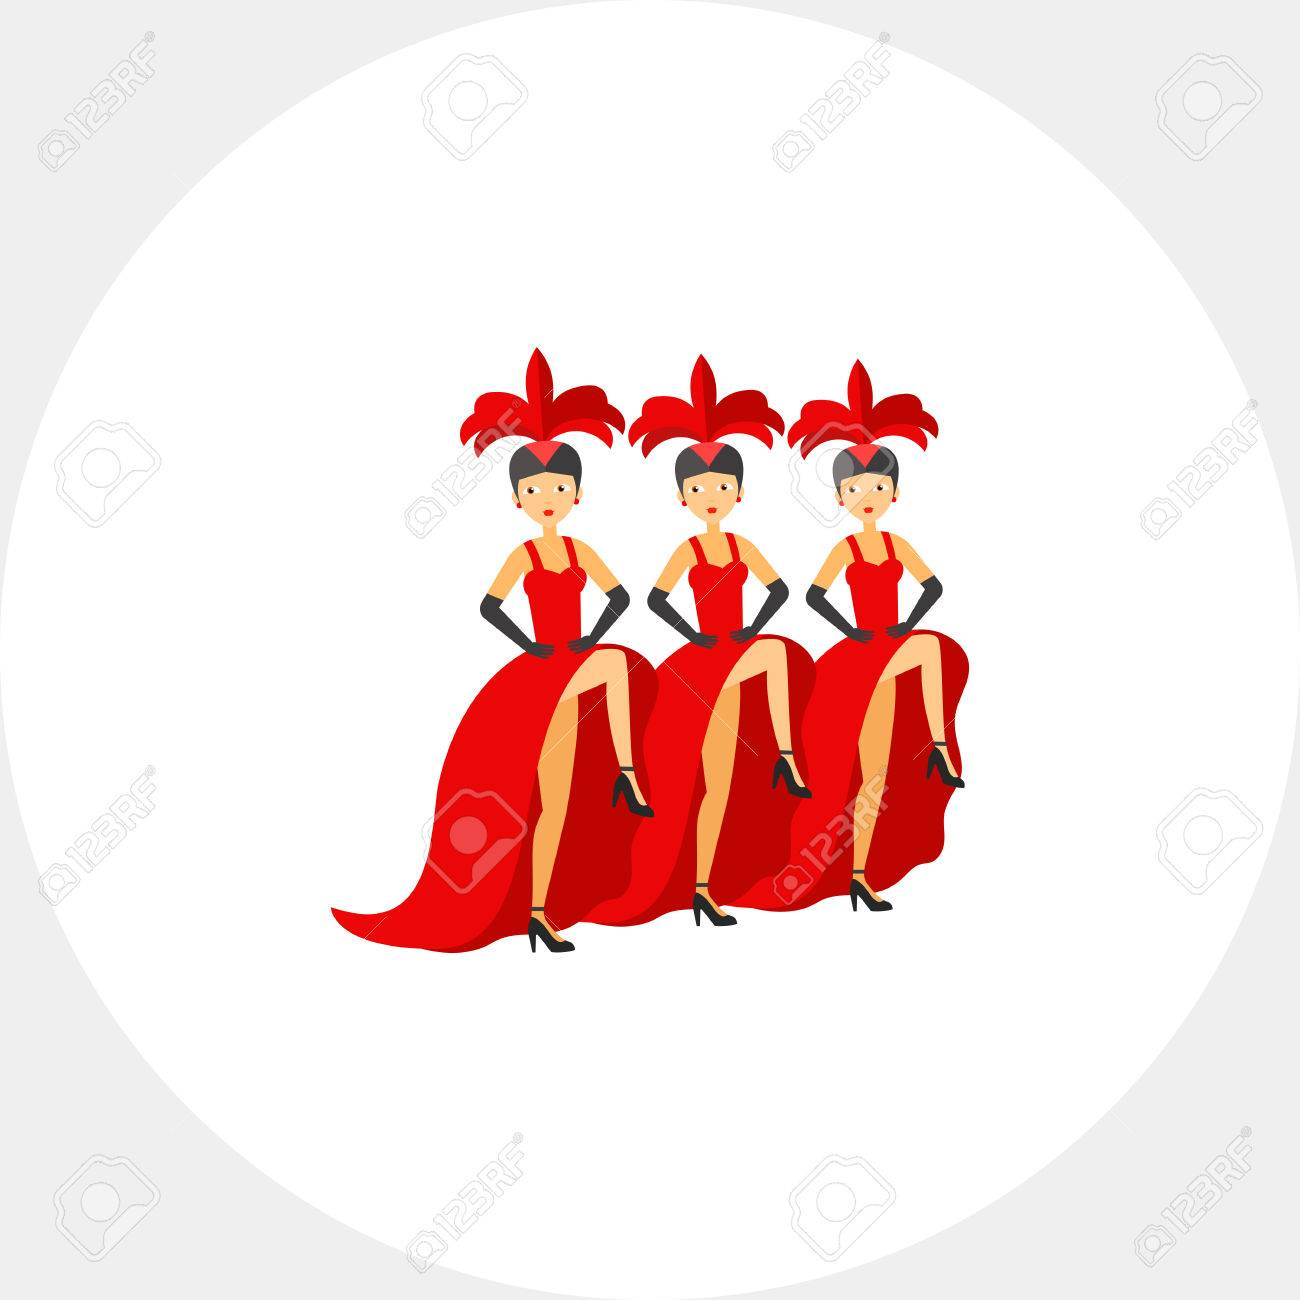 french cancan dancers icon royalty free cliparts vectors and stock rh 123rf com Dancer Clip Art Top Hat Clip Art